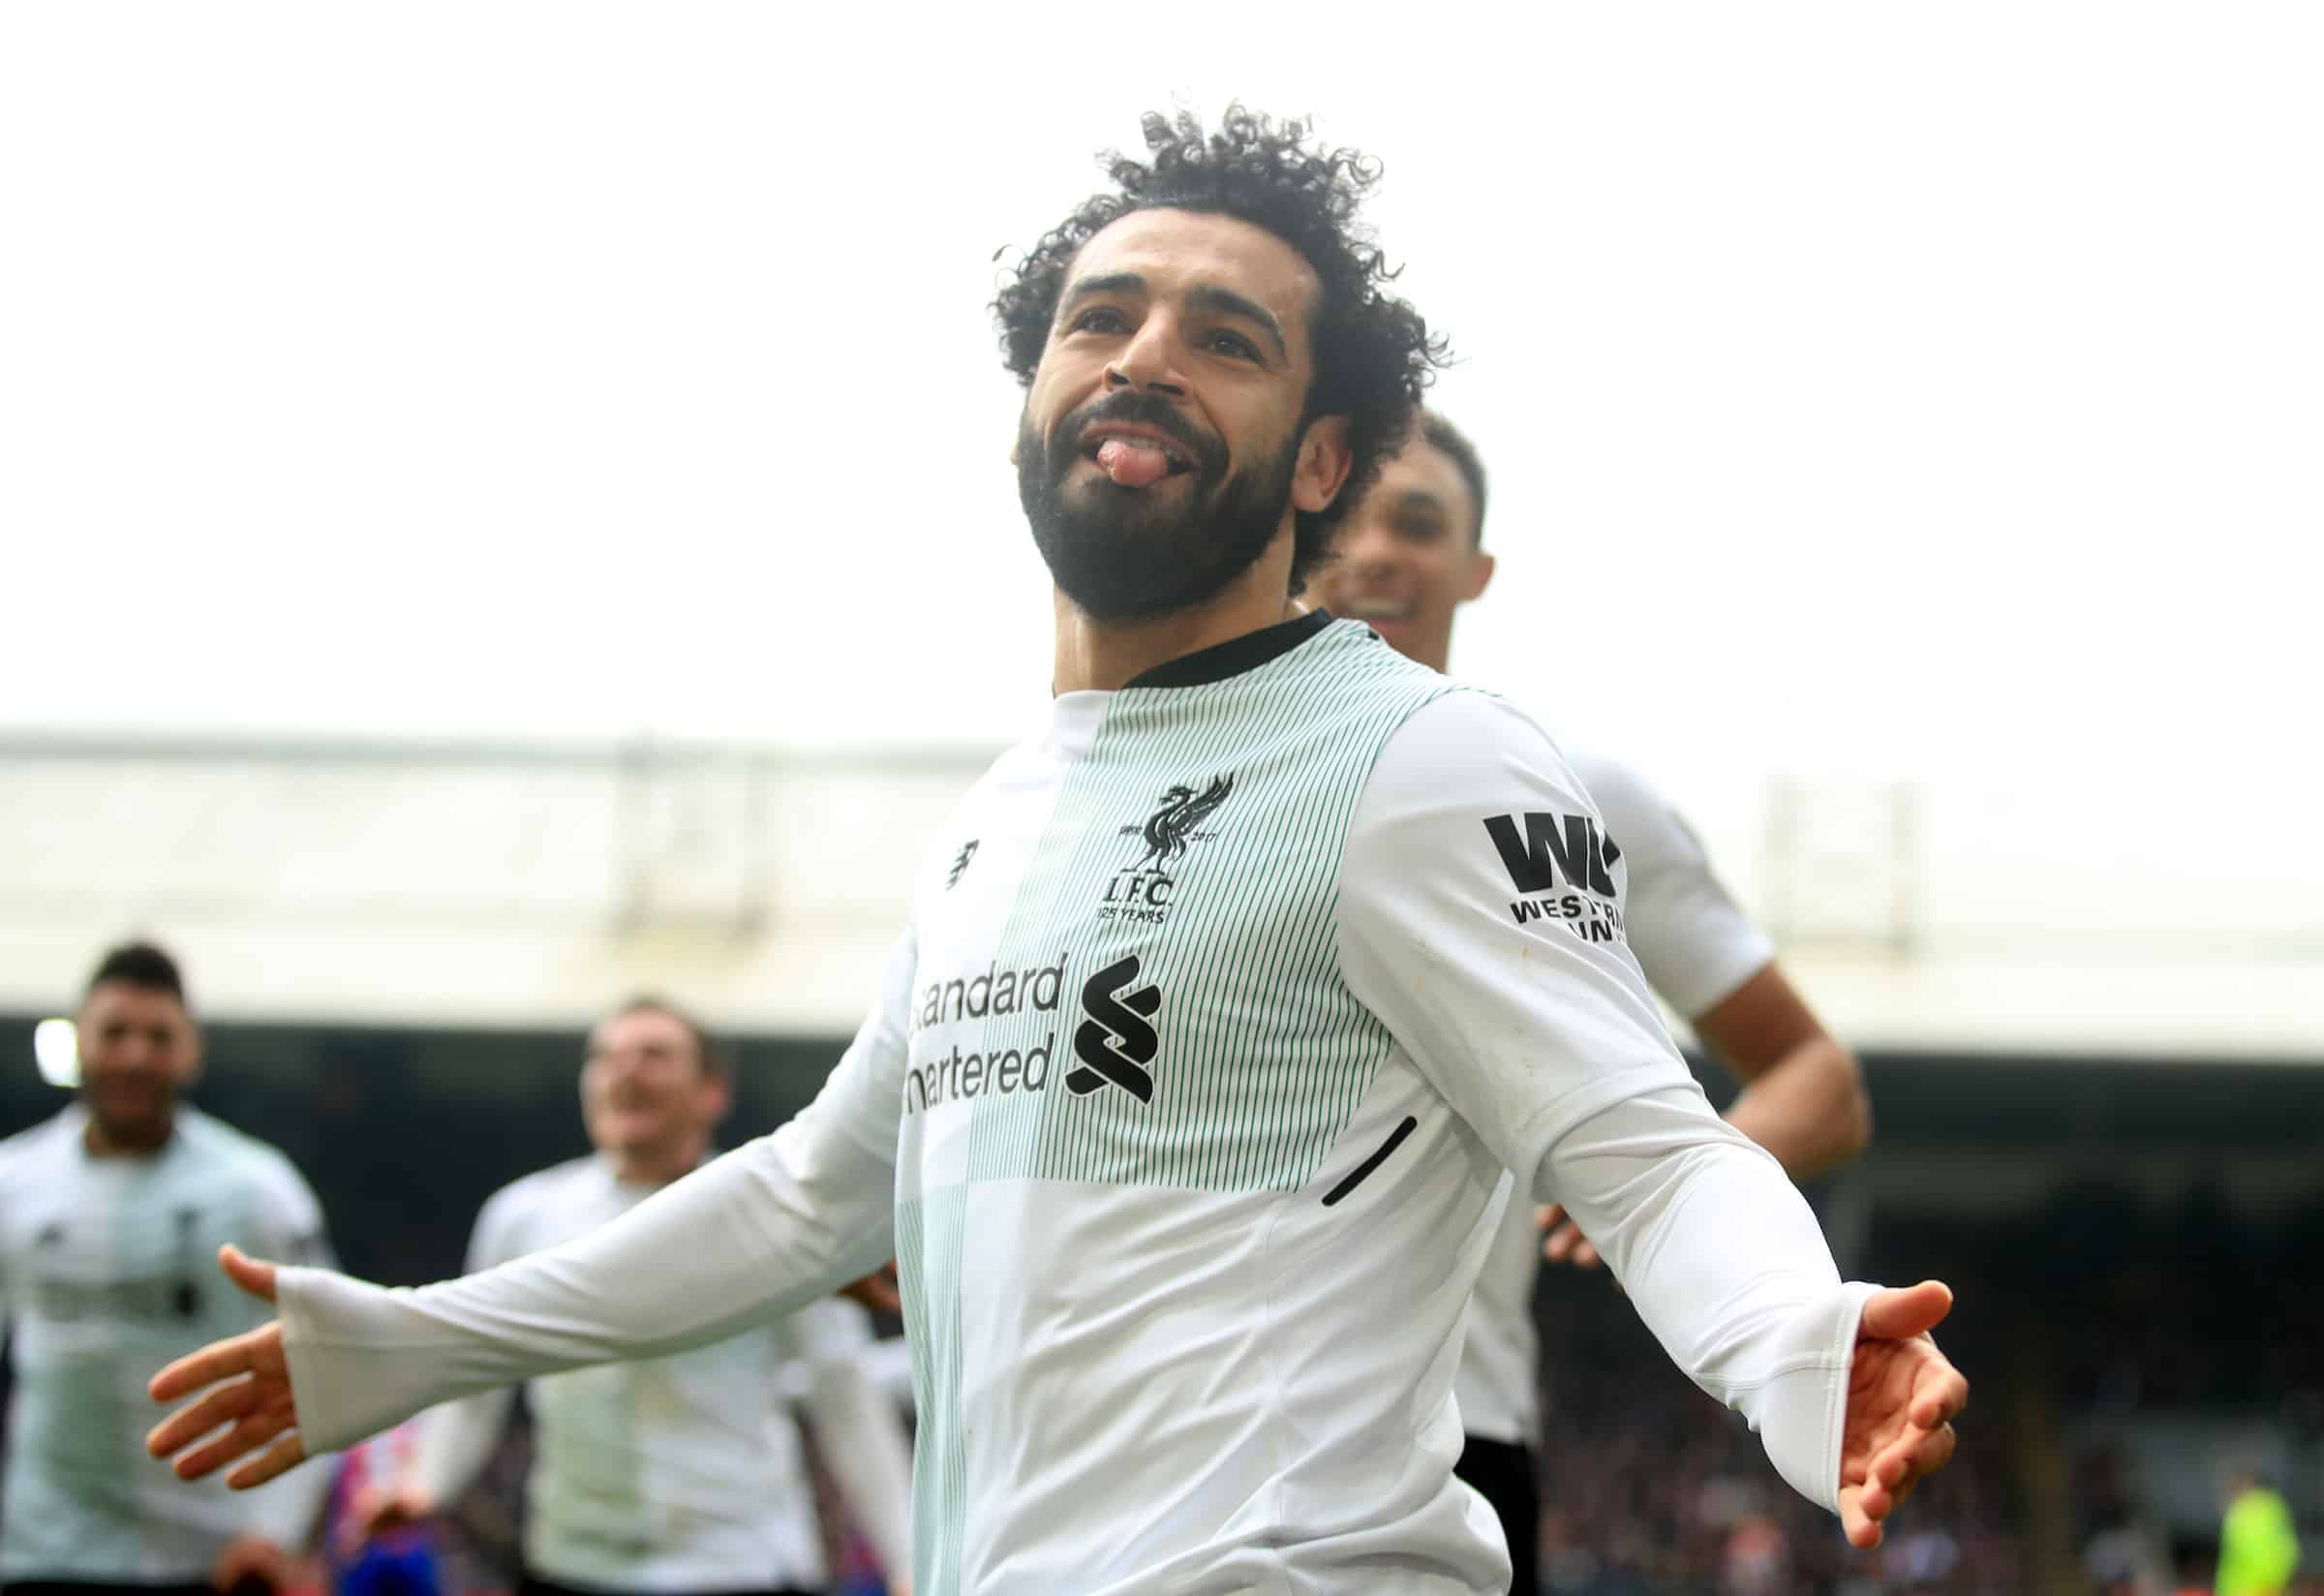 Liverpool's Mohamed Salah celebrates scoring his side's second goal of the game during the Premier League match at Selhurst Park, London. ( Adam Davy/PA Wire/PA Images)